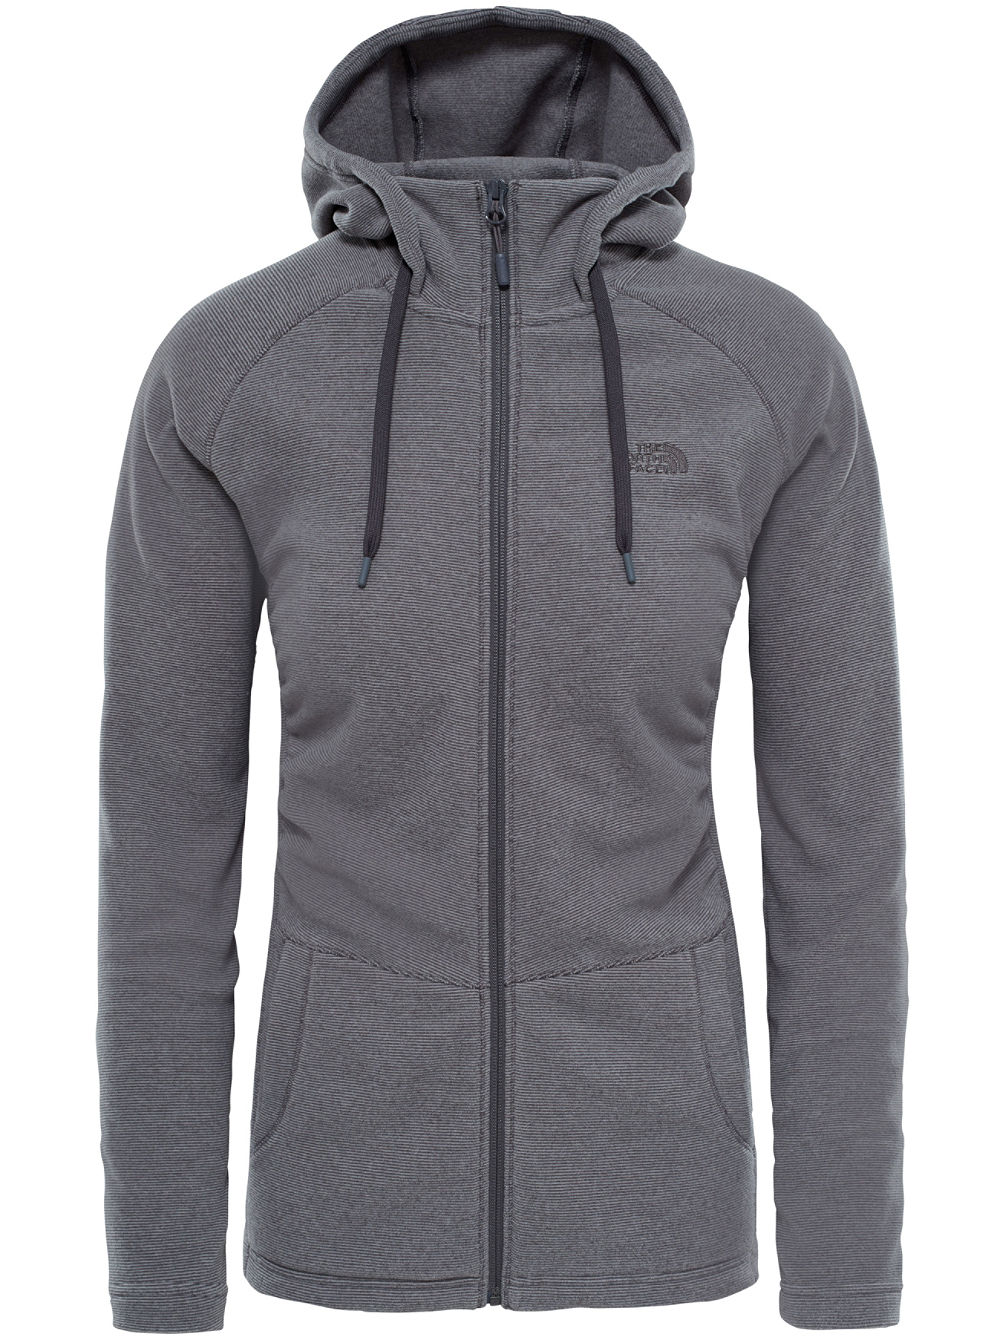 Mezzaluna Hooded Fleece Jacket